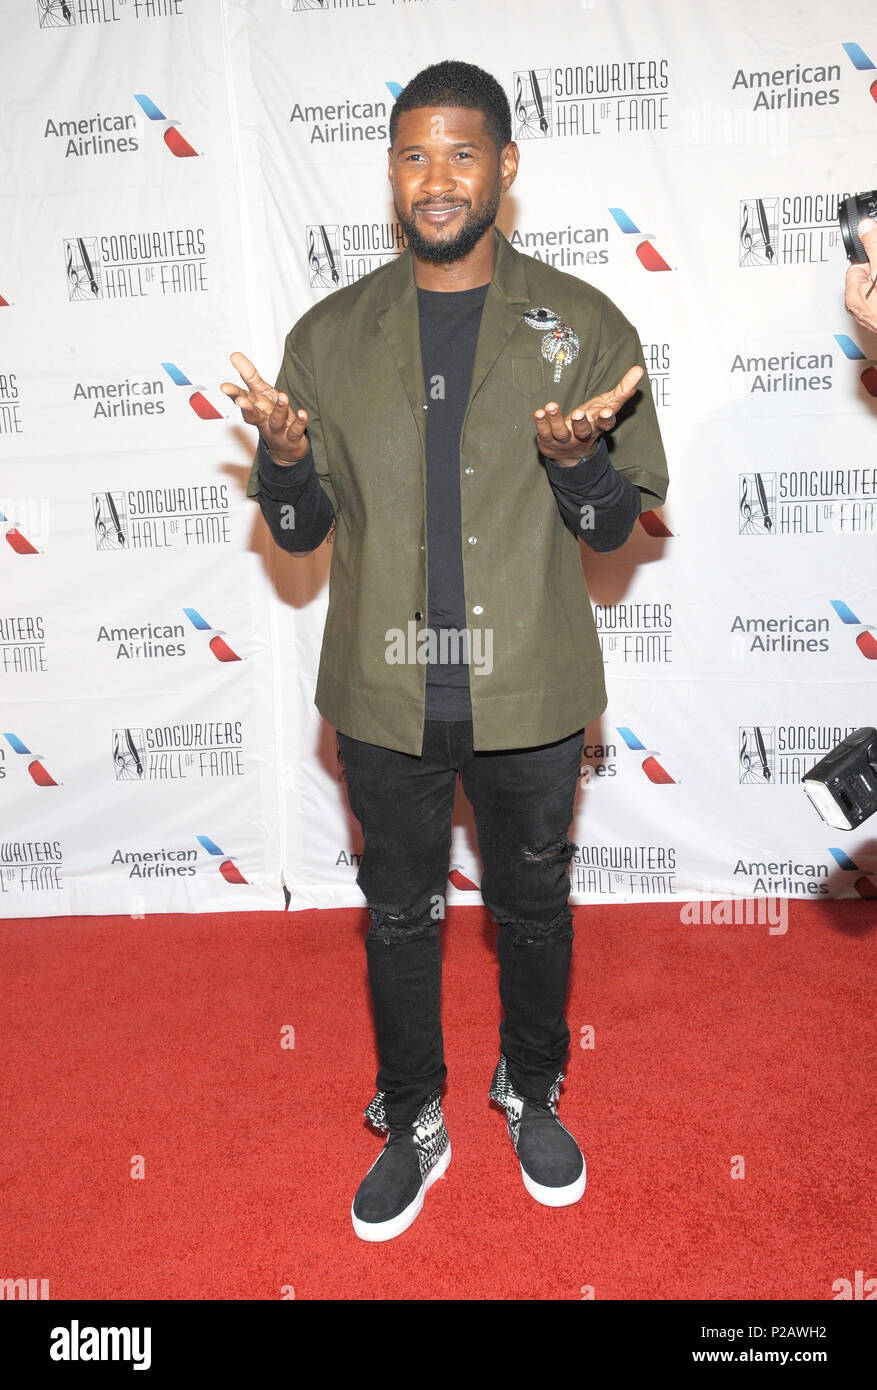 New York, NY, USA. 14th June, 2018. Usher attends the Songwriters Hall of Fame 49th Annual Induction and Awards Dinner at New York Marriott Marquis Hotel on ...